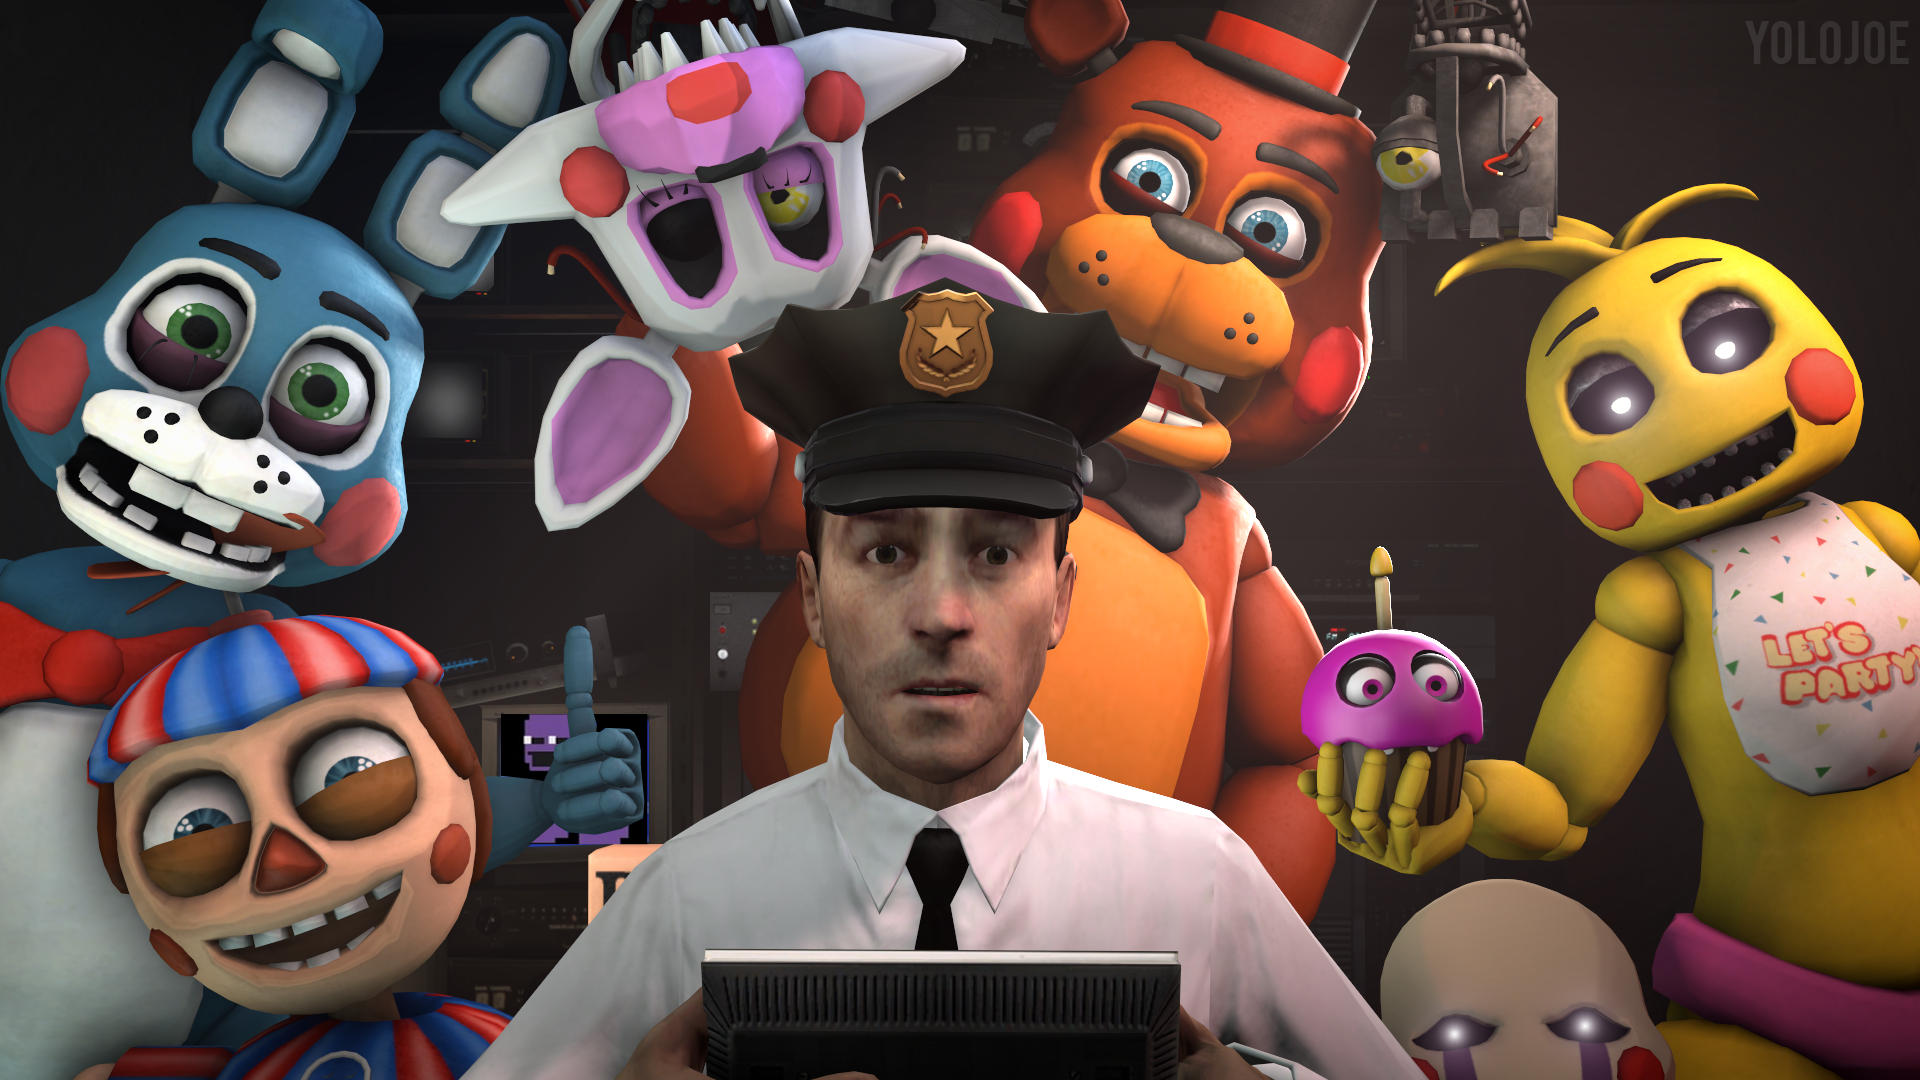 Why did I choose this job? | Five Nights at Freddy's | Know Your Meme